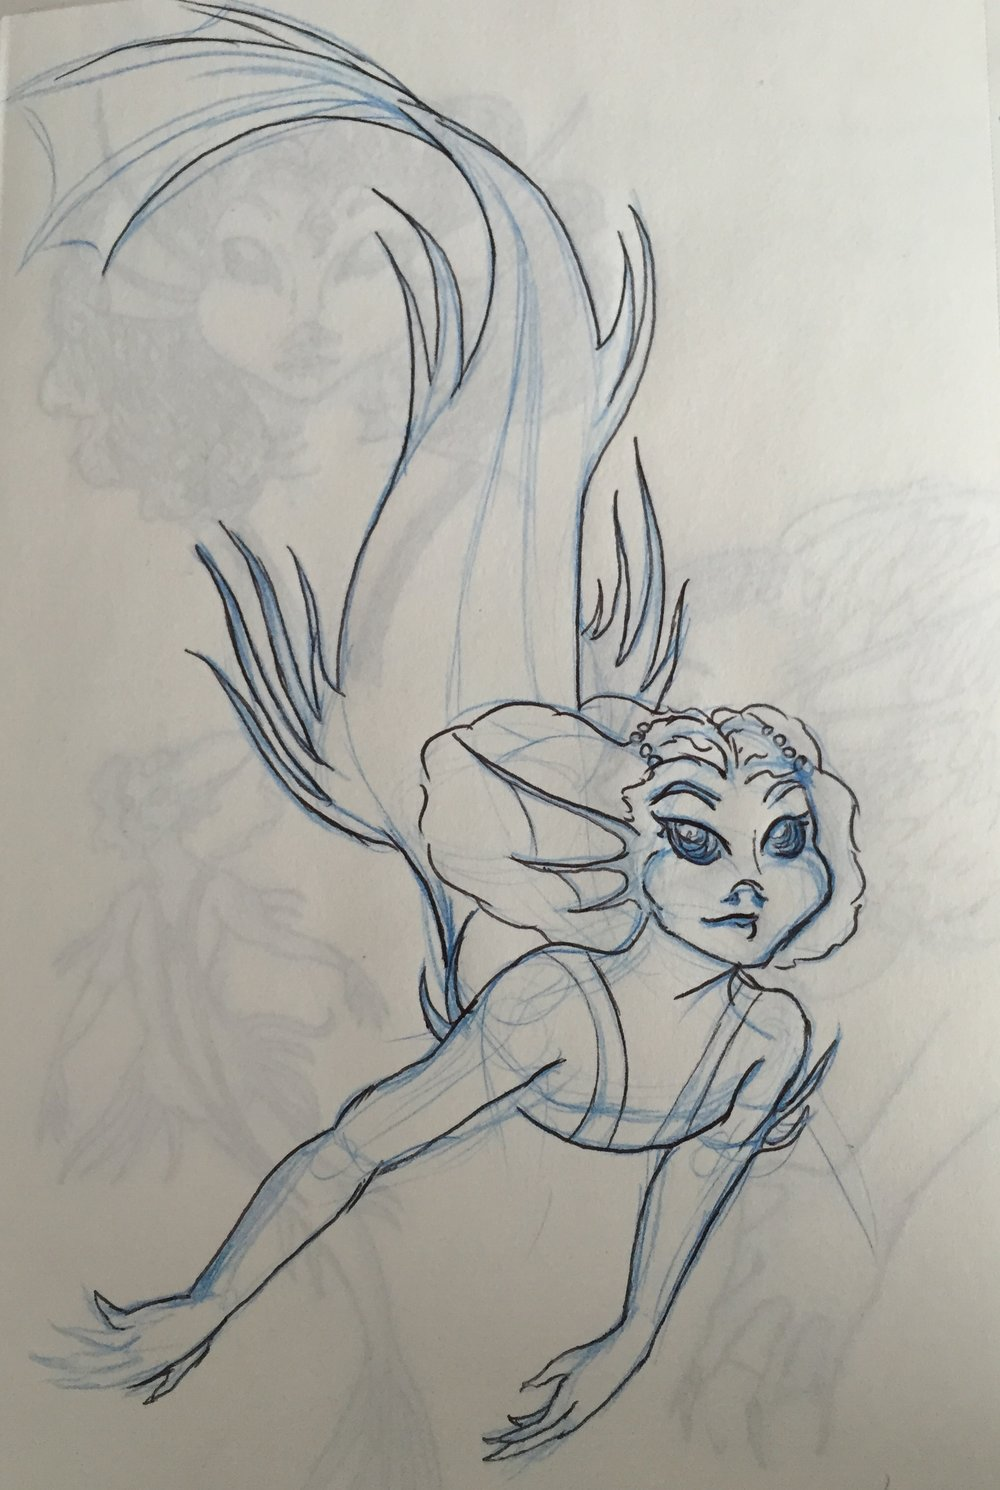 Mermaid concept character